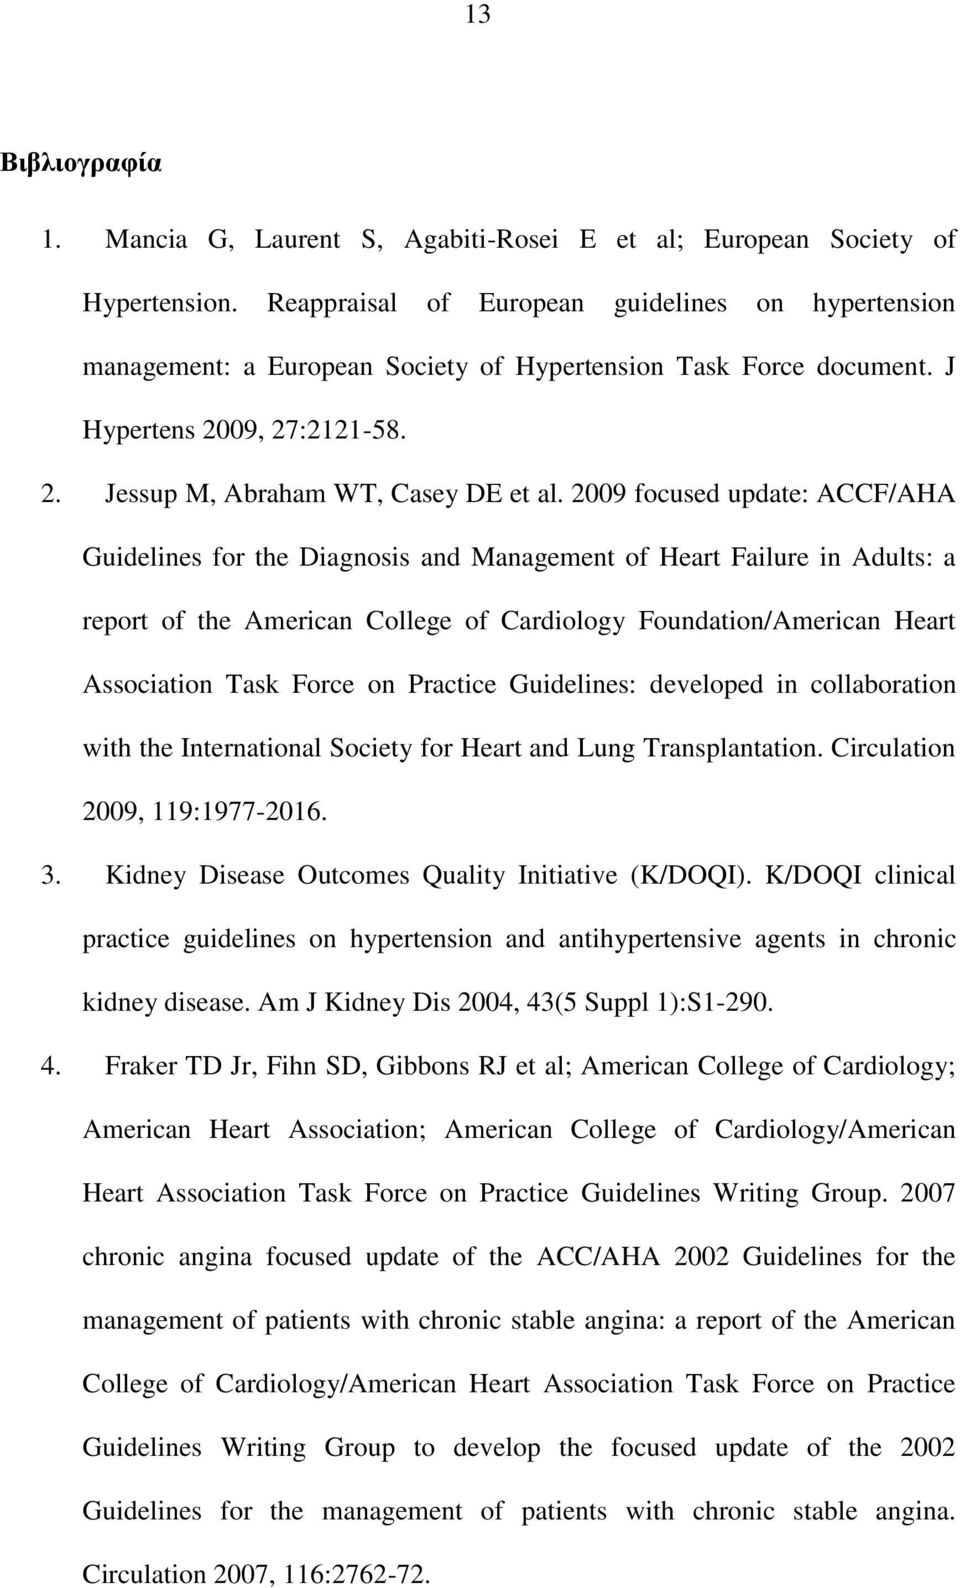 2009 focused update: ACCF/AHA Guidelines for the Diagnosis and Management of Heart Failure in Adults: a report of the American College of Cardiology Foundation/American Heart Association Task Force